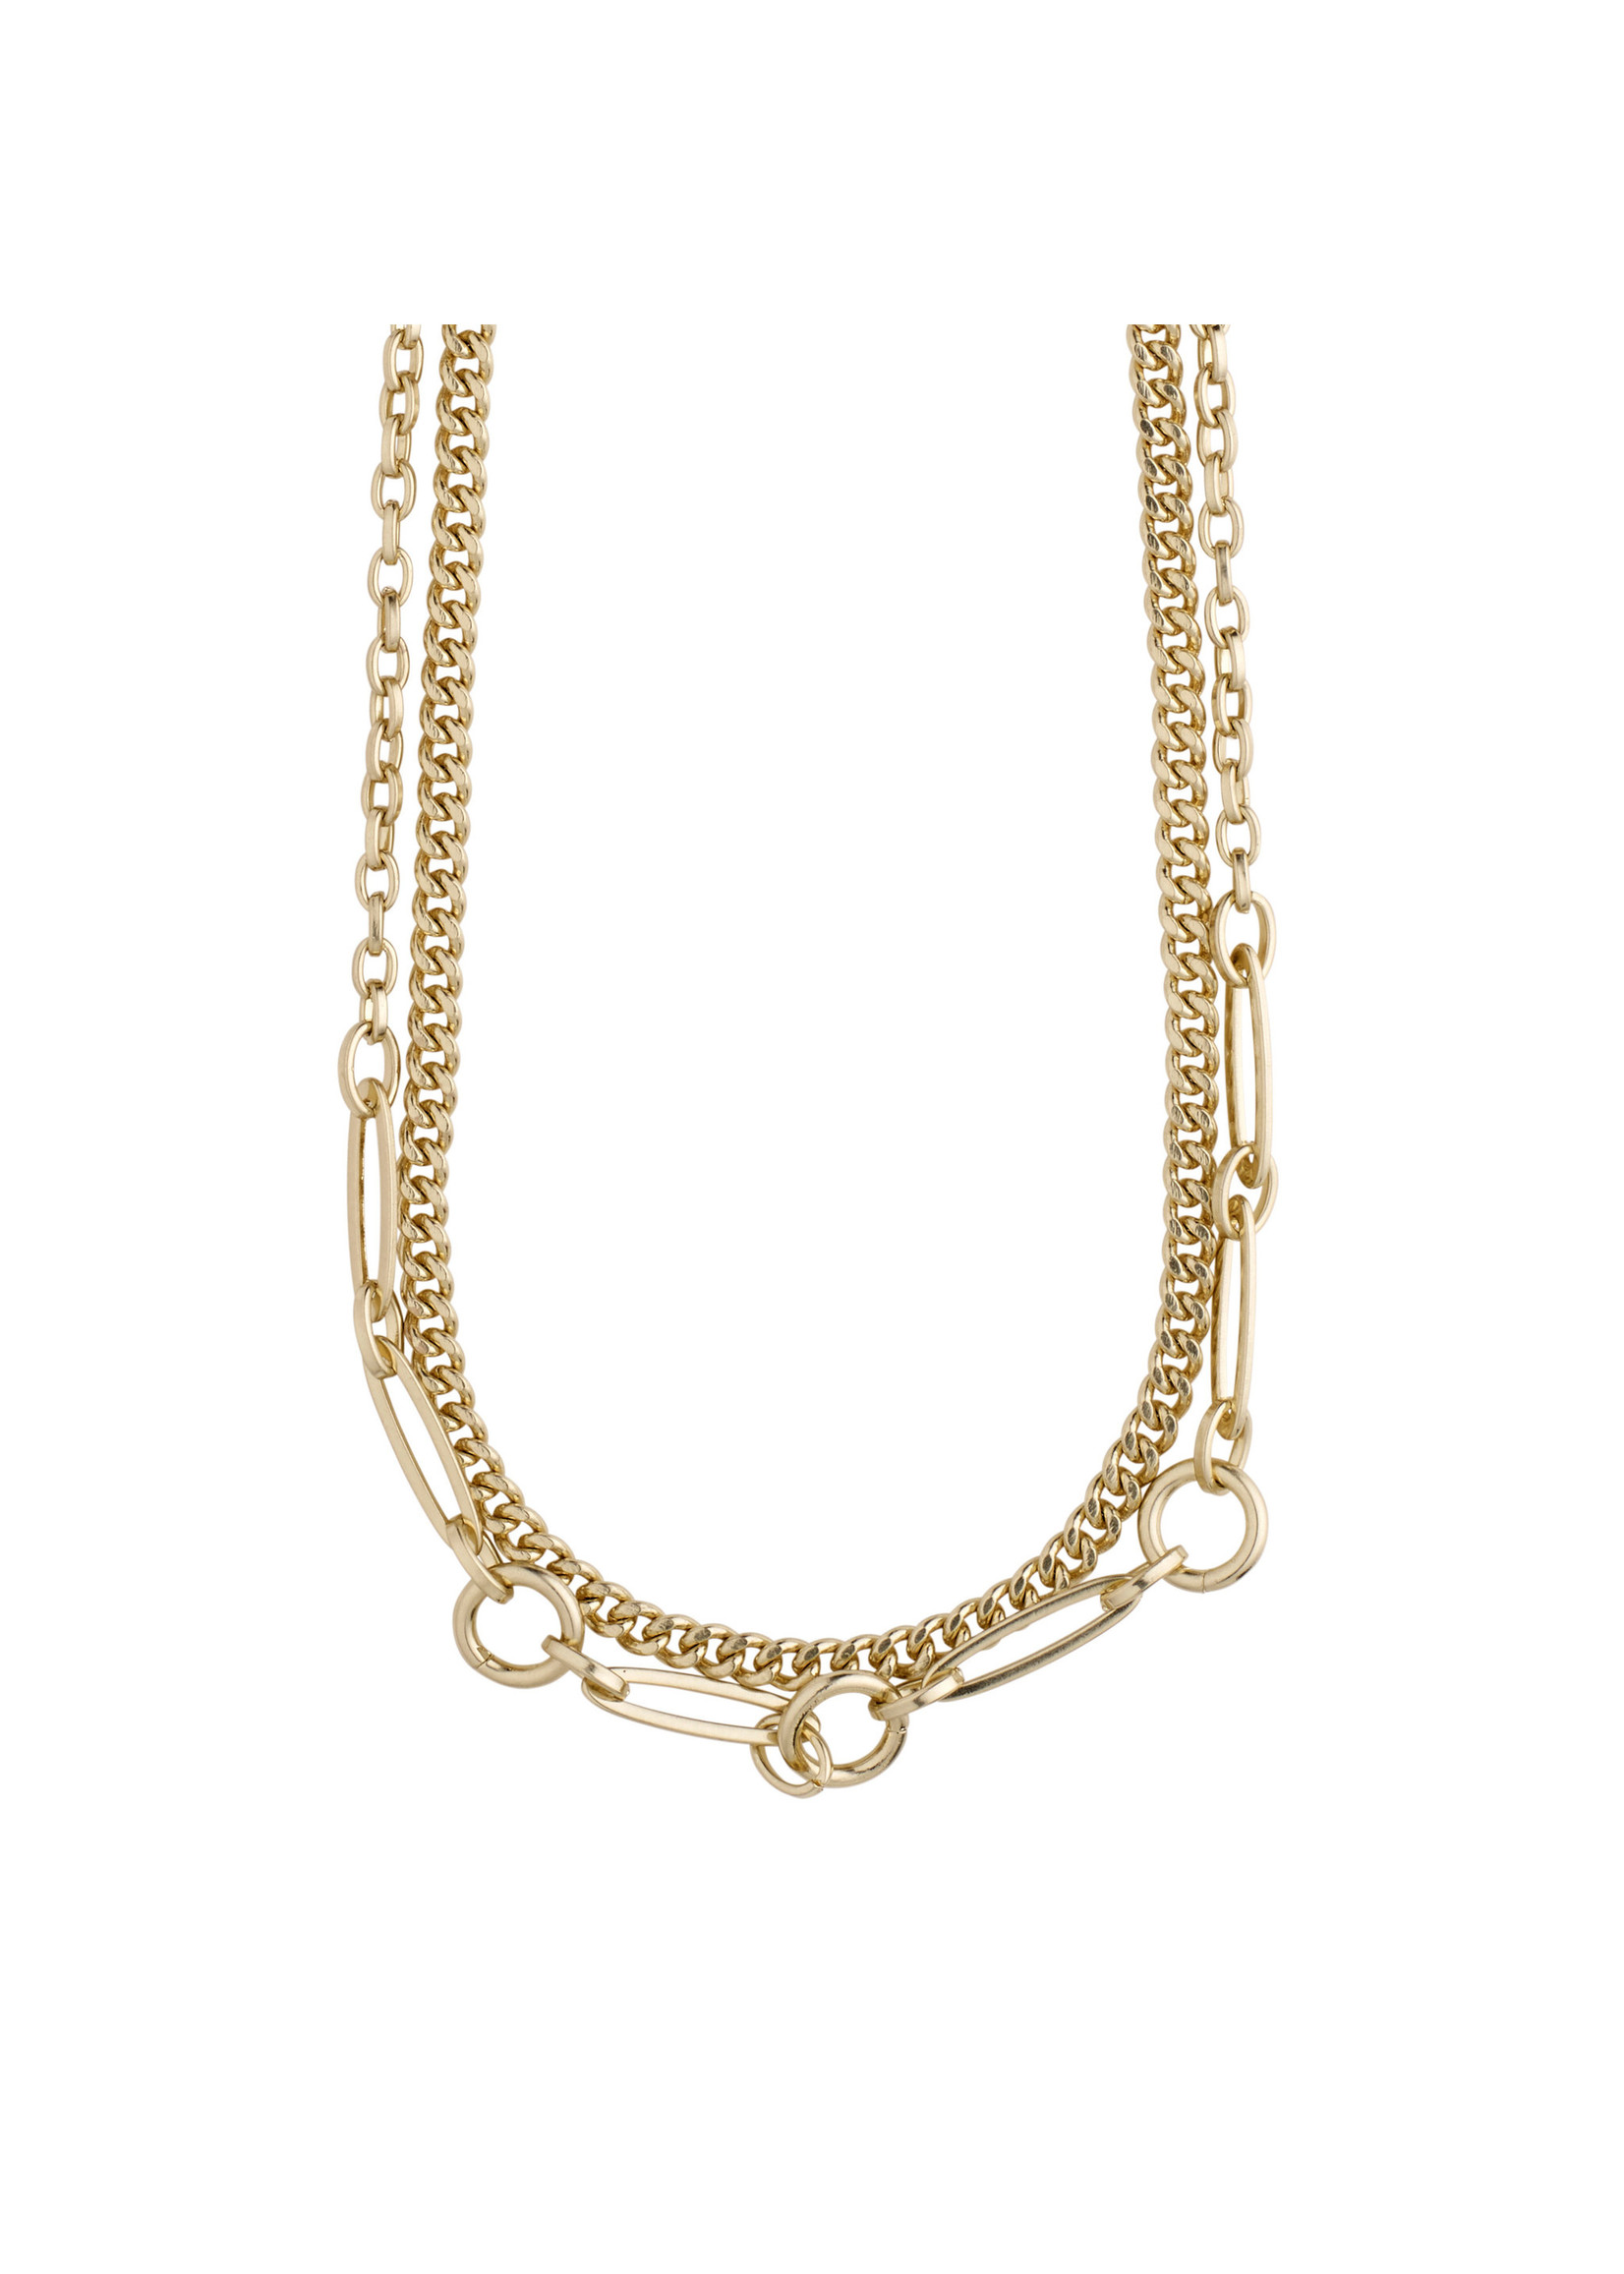 Sensitivity 2-in-1 Chain Necklace - Gold